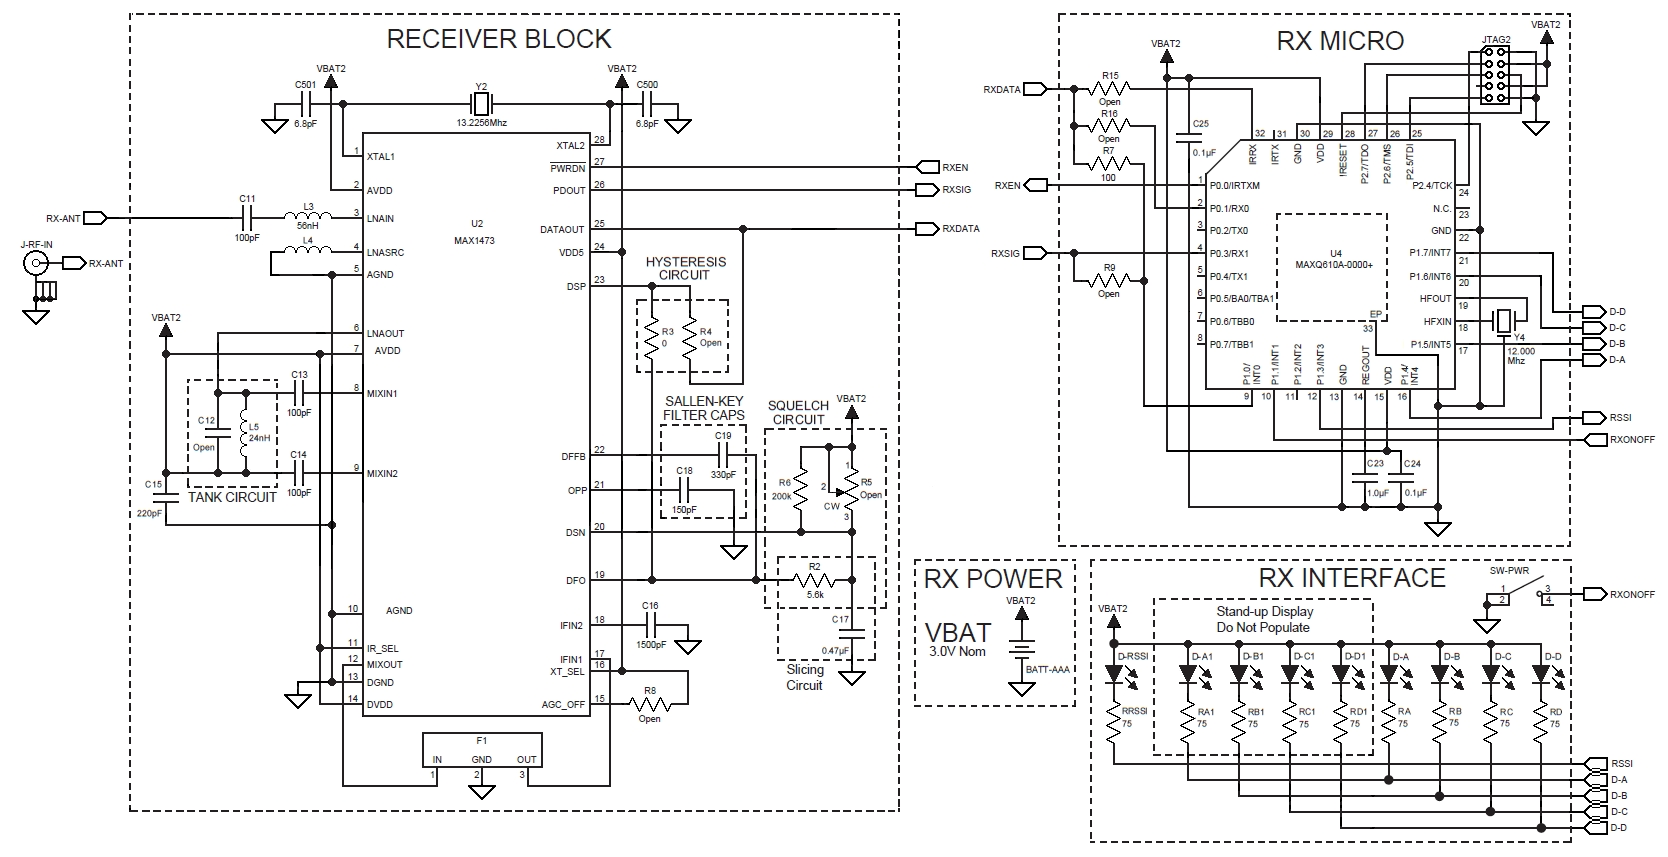 hight resolution of lfrd001 schematic 2 full png lfrd001 schematic 3 full png